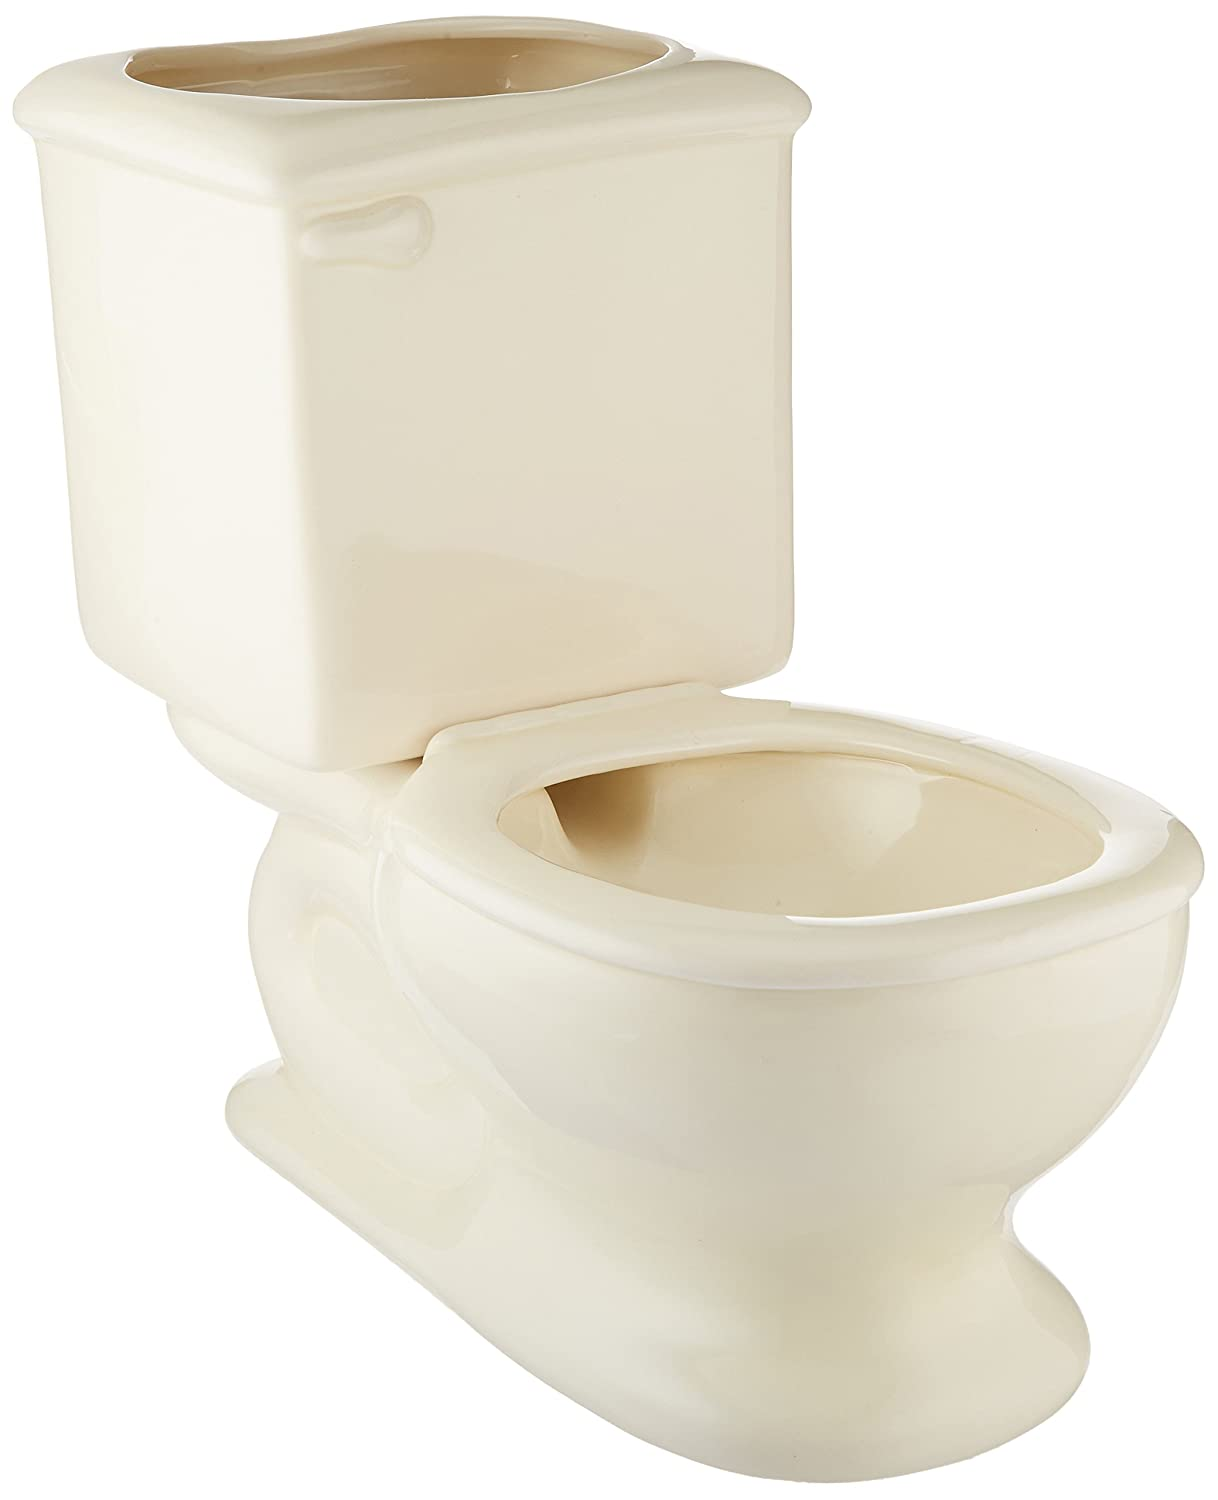 Pet Supplies : CSB Toilet Bowl Dog and Cat Fountain : Pet Bowls ...